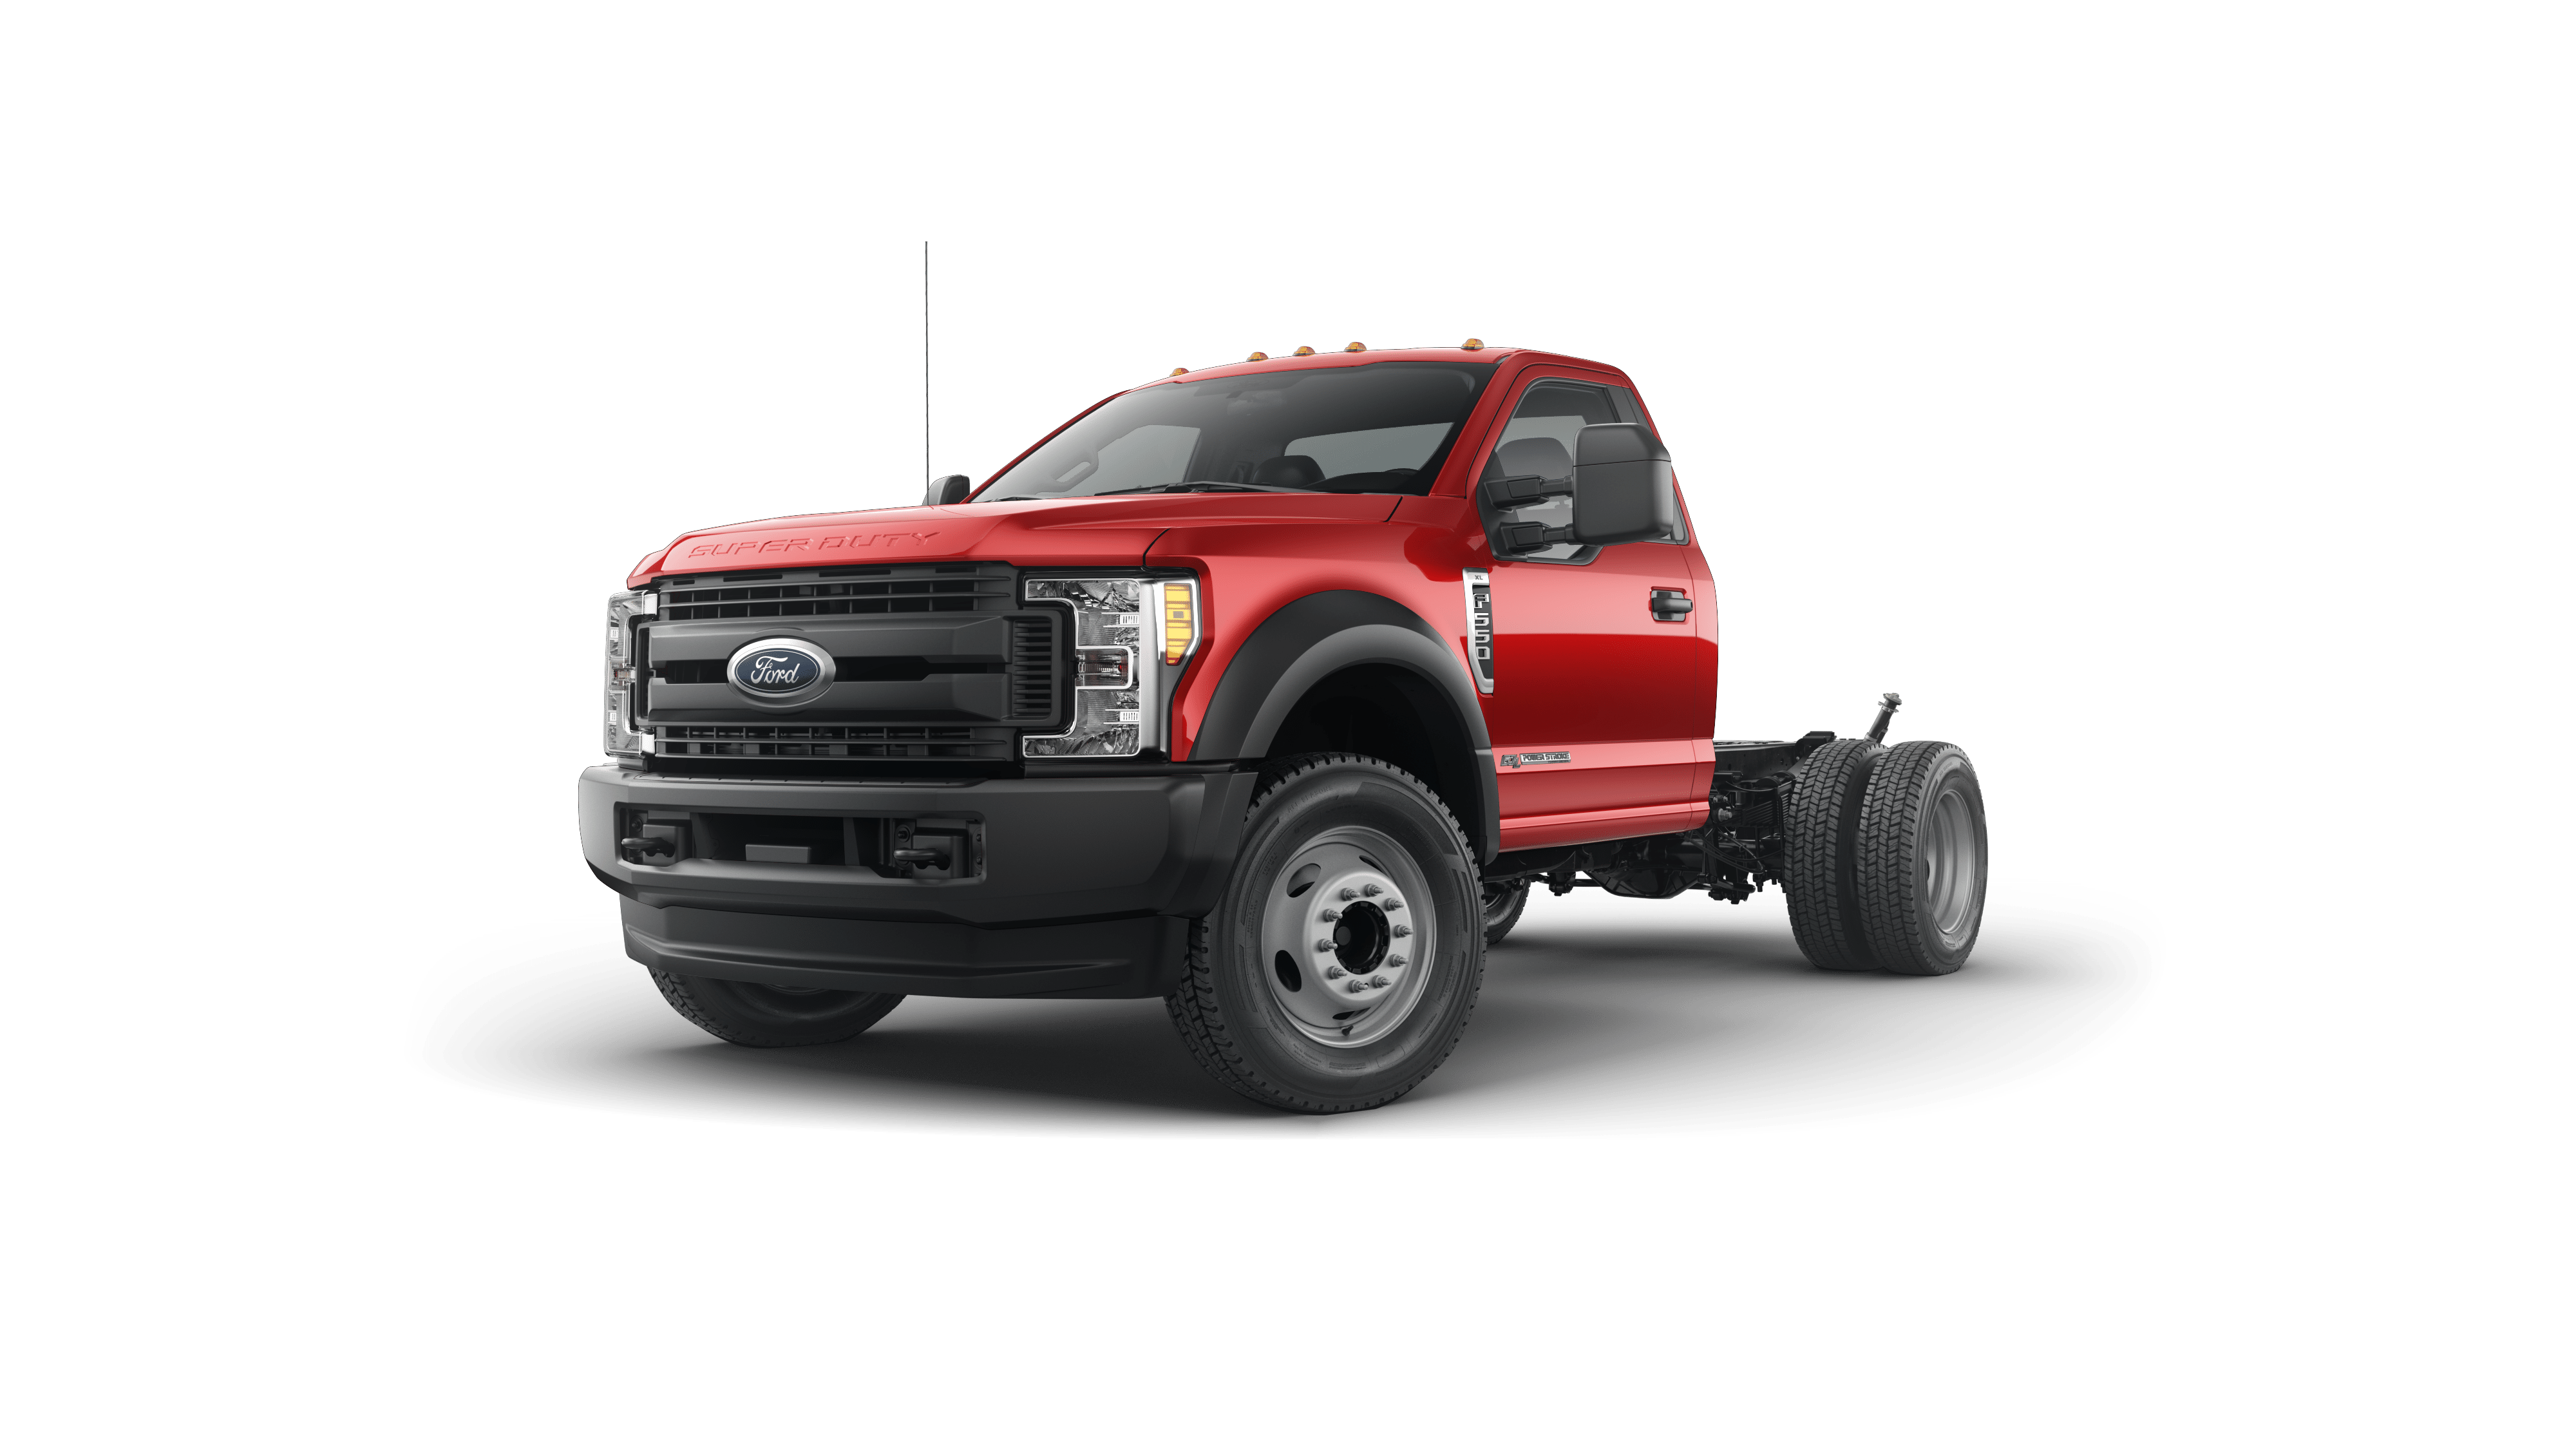 2018 Ford Super Duty F-550 DRW Vehicle Photo in Quakertown, PA 18951-1403